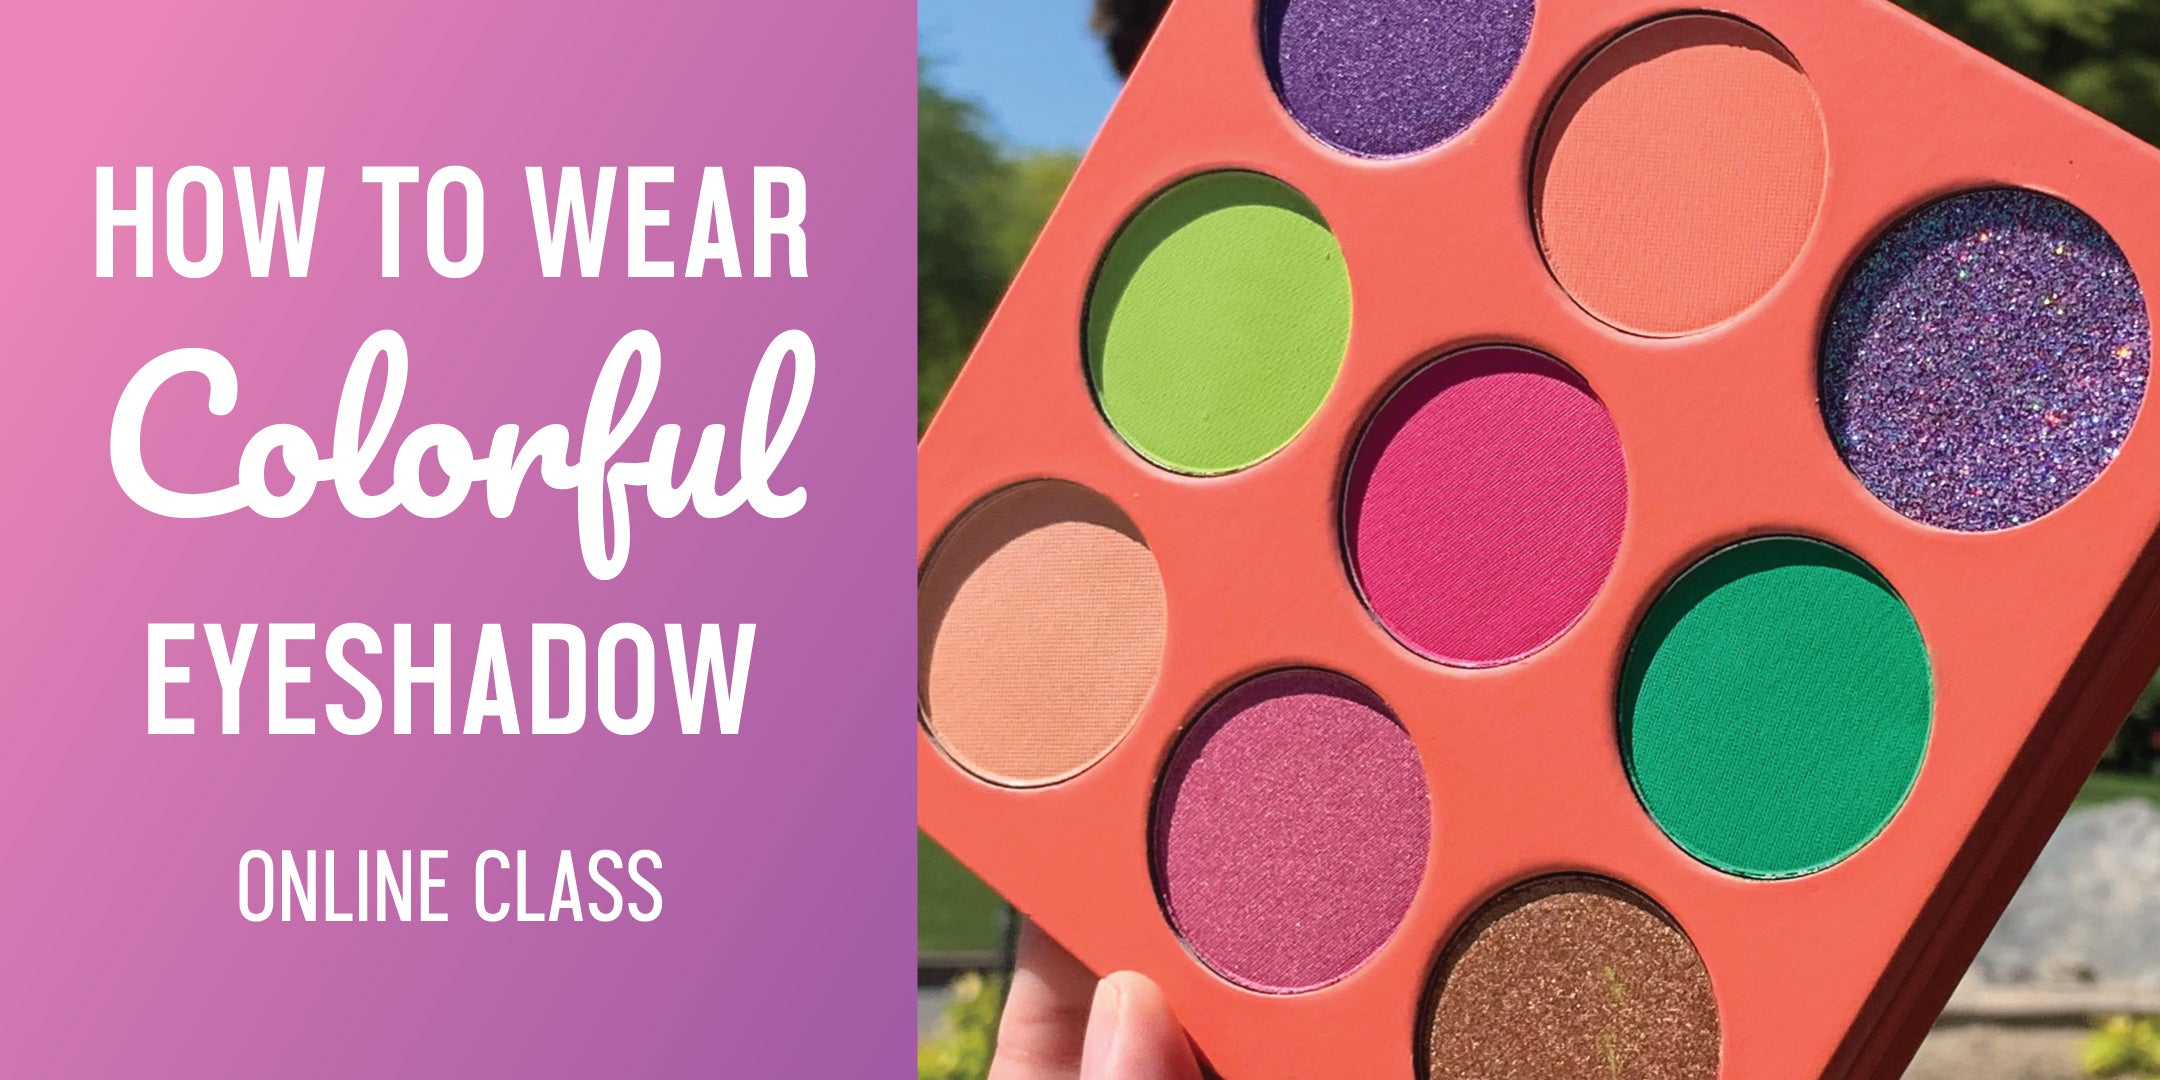 How to Wear Colorful Makeup Workshop